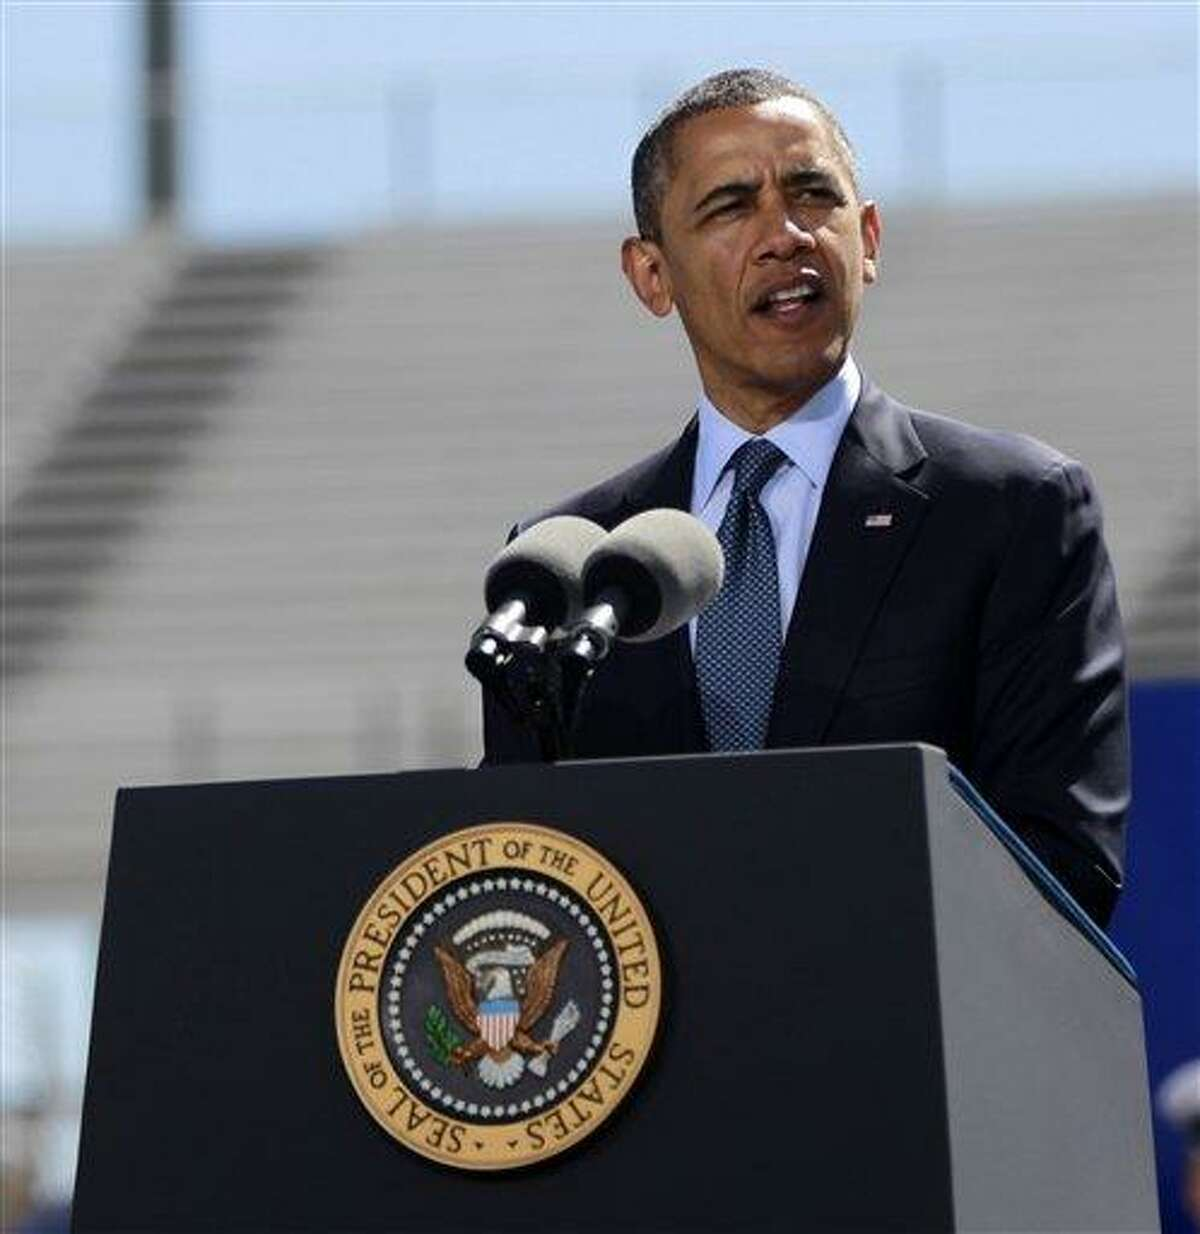 President Barack Obama delivers the commencement address Wednesday at the U.S. Air Force Academy in Colorado Springs, Colo. Associated Press